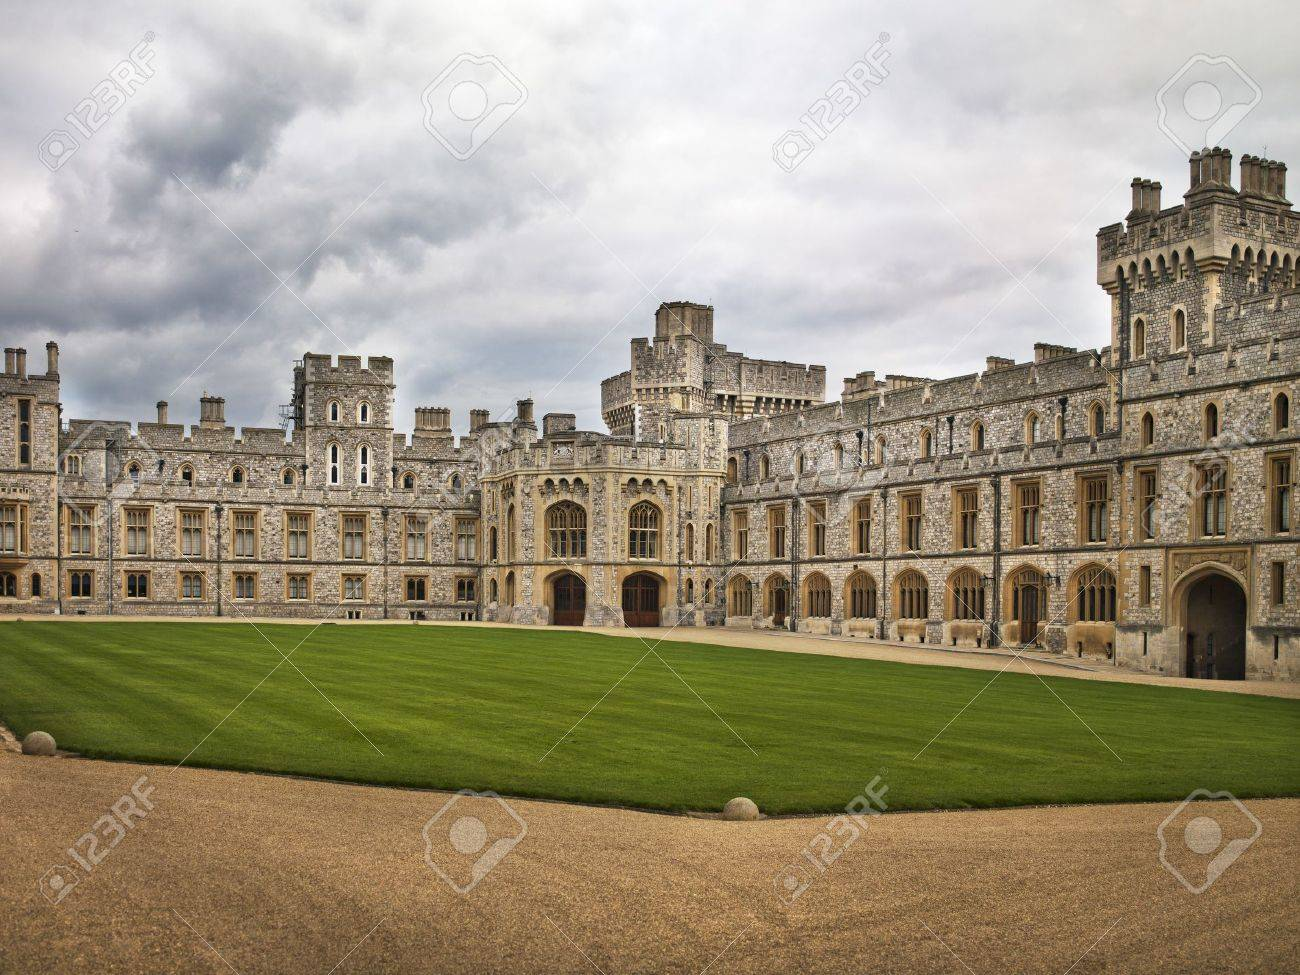 A courtyard at Windsor castle with very well kept grass on the outskirts of  London,